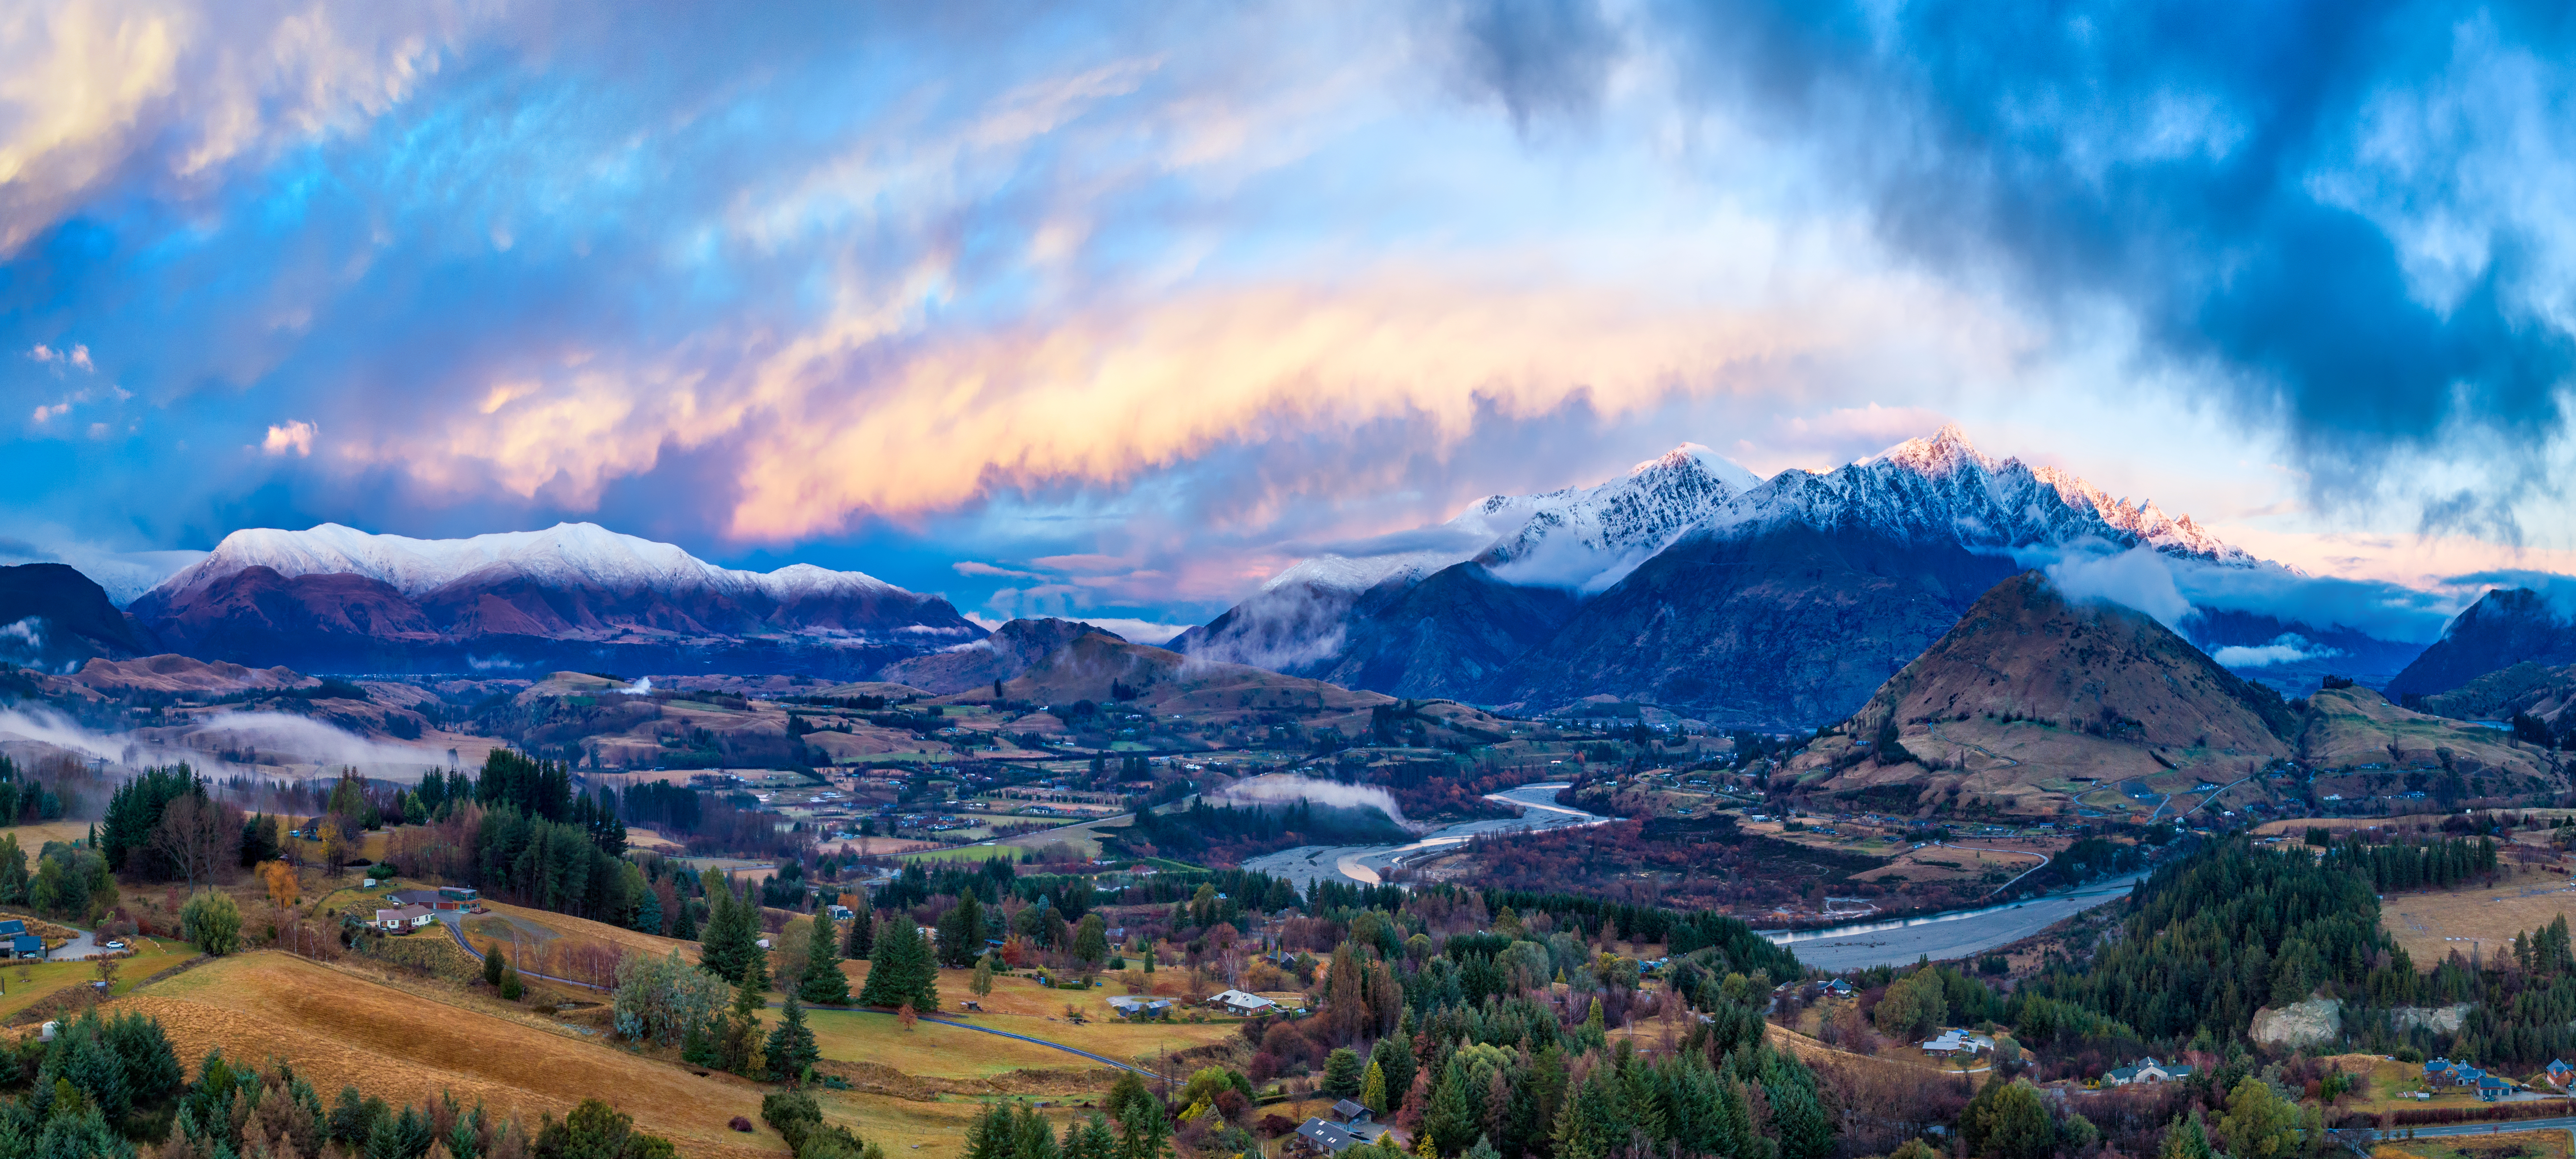 11 Queenstown New Zealand Hd Wallpapers Background Images Wallpaper Abyss